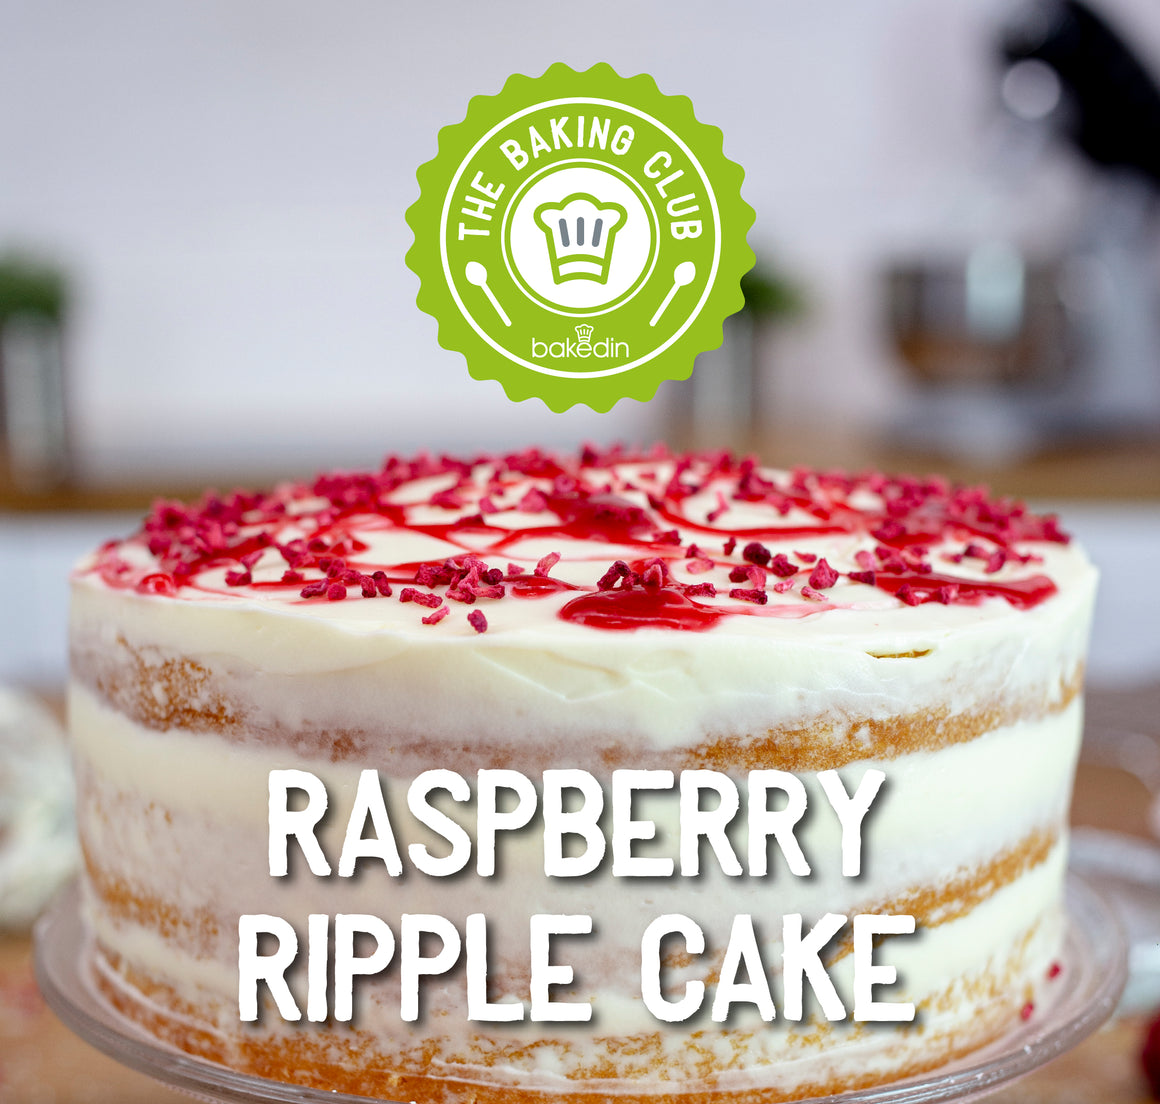 Past Baking Club Box - Raspberry Ripple Cake